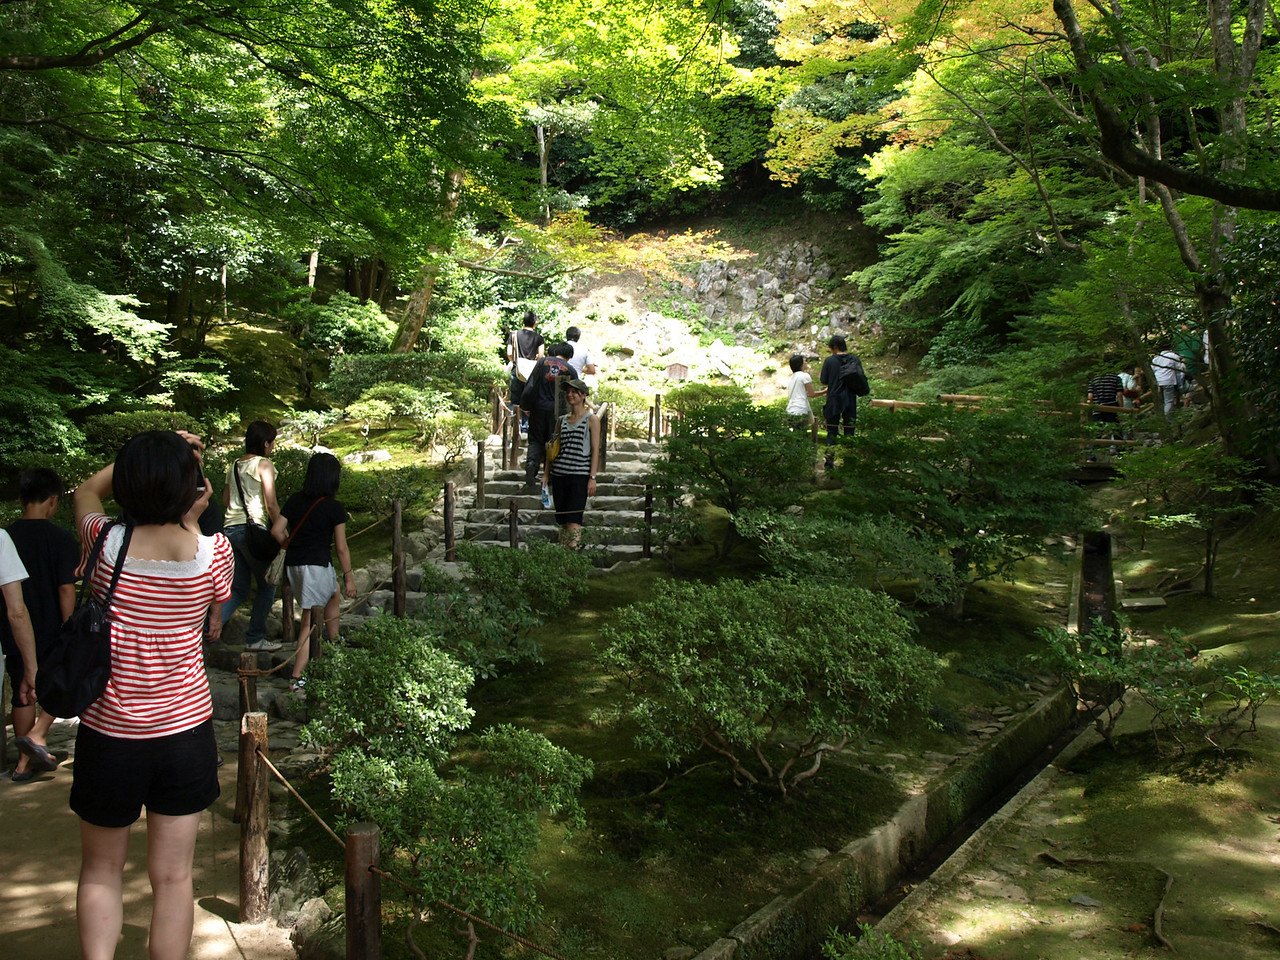 Following the sand garden, we climbed the slopes of the Higashiyama mountain via this stairway.